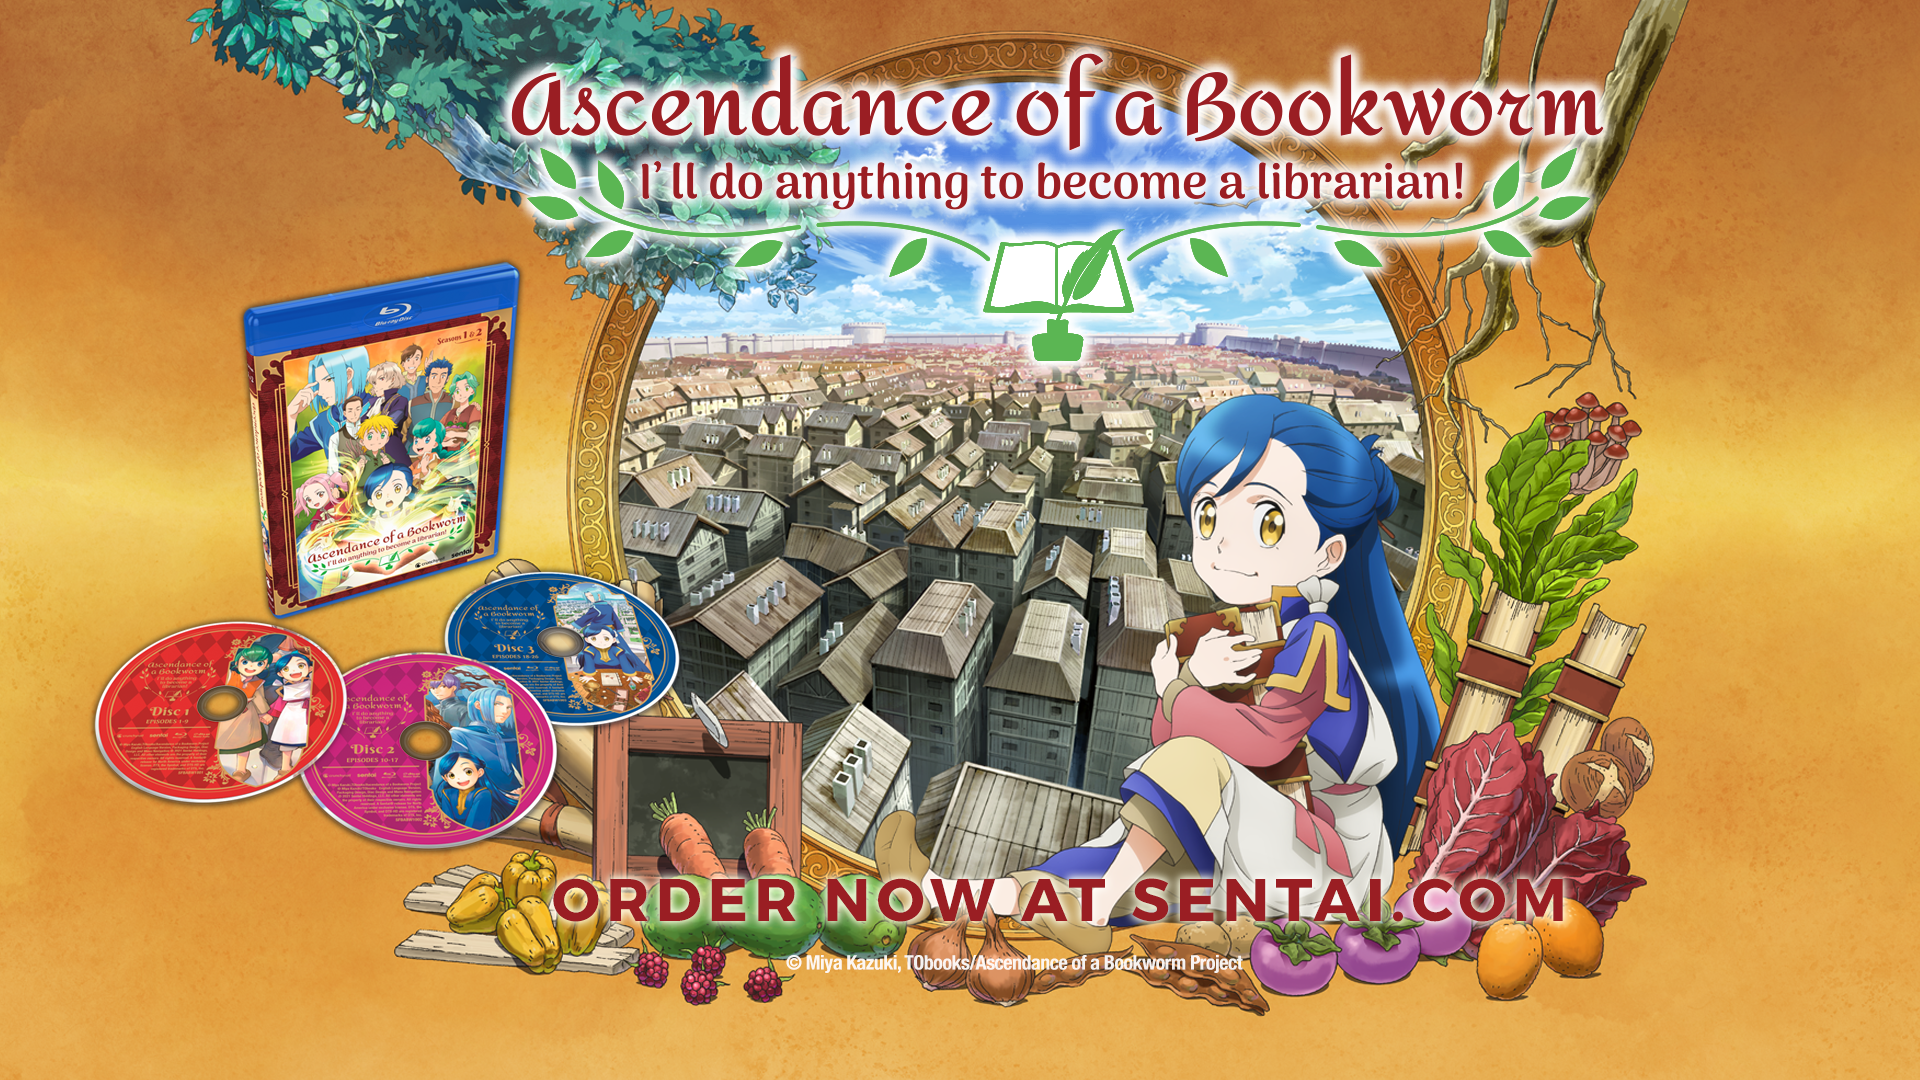 """A picture of the Acendace of a Bookworm Blu-ray along with Myne against a city landscape. The text says, """"Ascendance of a Bookworm,"""" """"I'll do anything to become a librarian!"""" and """"Order now at sentai.com"""""""